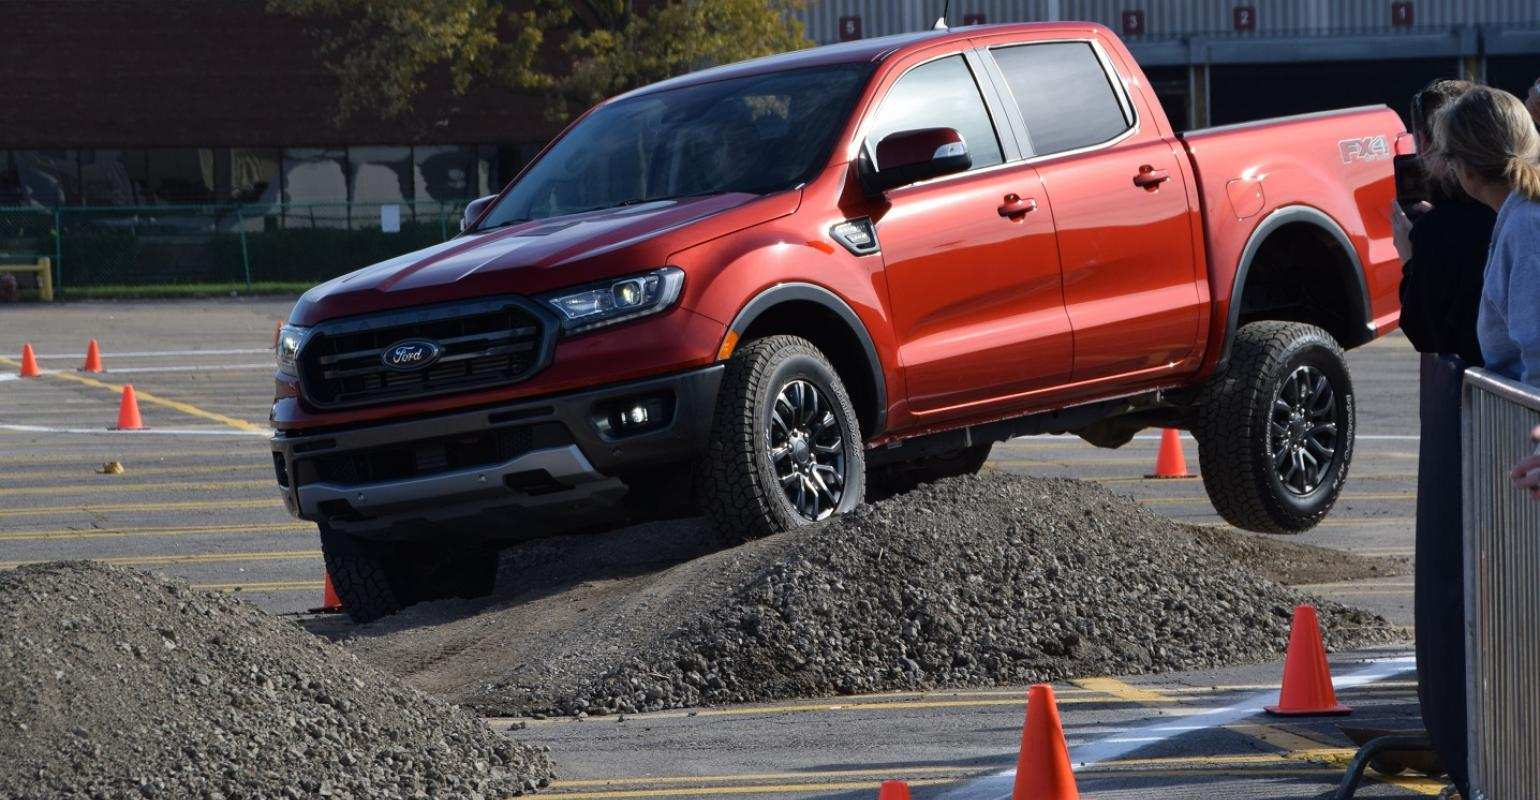 55 Gallery of 2019 Usa Ford Ranger Review with 2019 Usa Ford Ranger